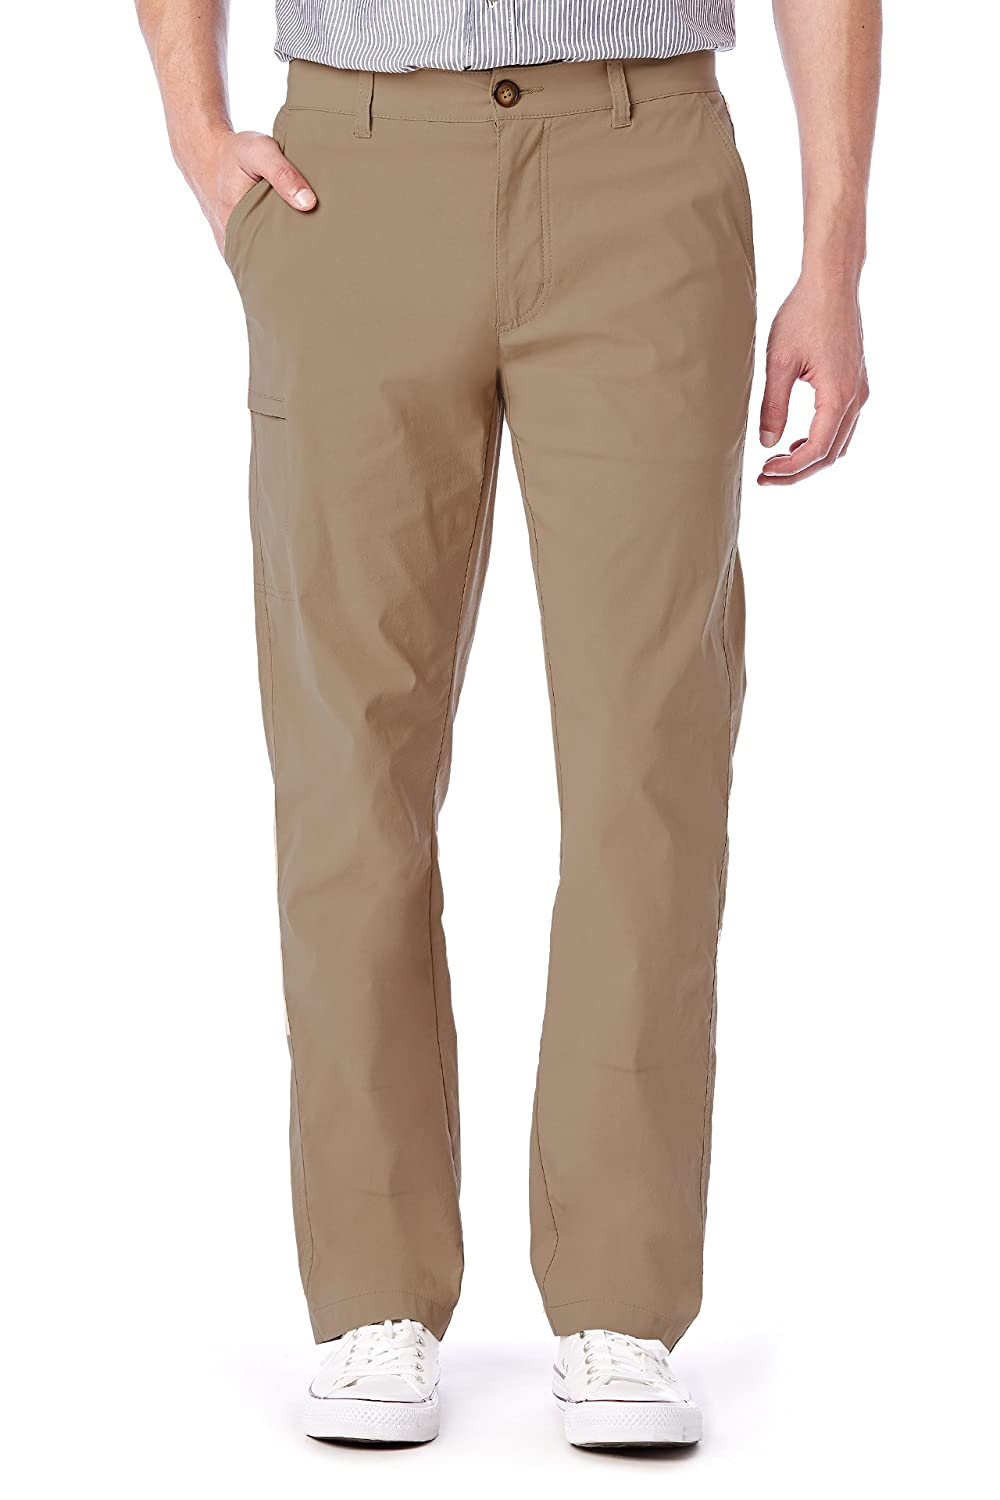 UB TECH Mens Comfort Waist Travel Chino Active Cargo Pants UPF 50 Water Repellent, 36W x 32L - Khaki Unionbay